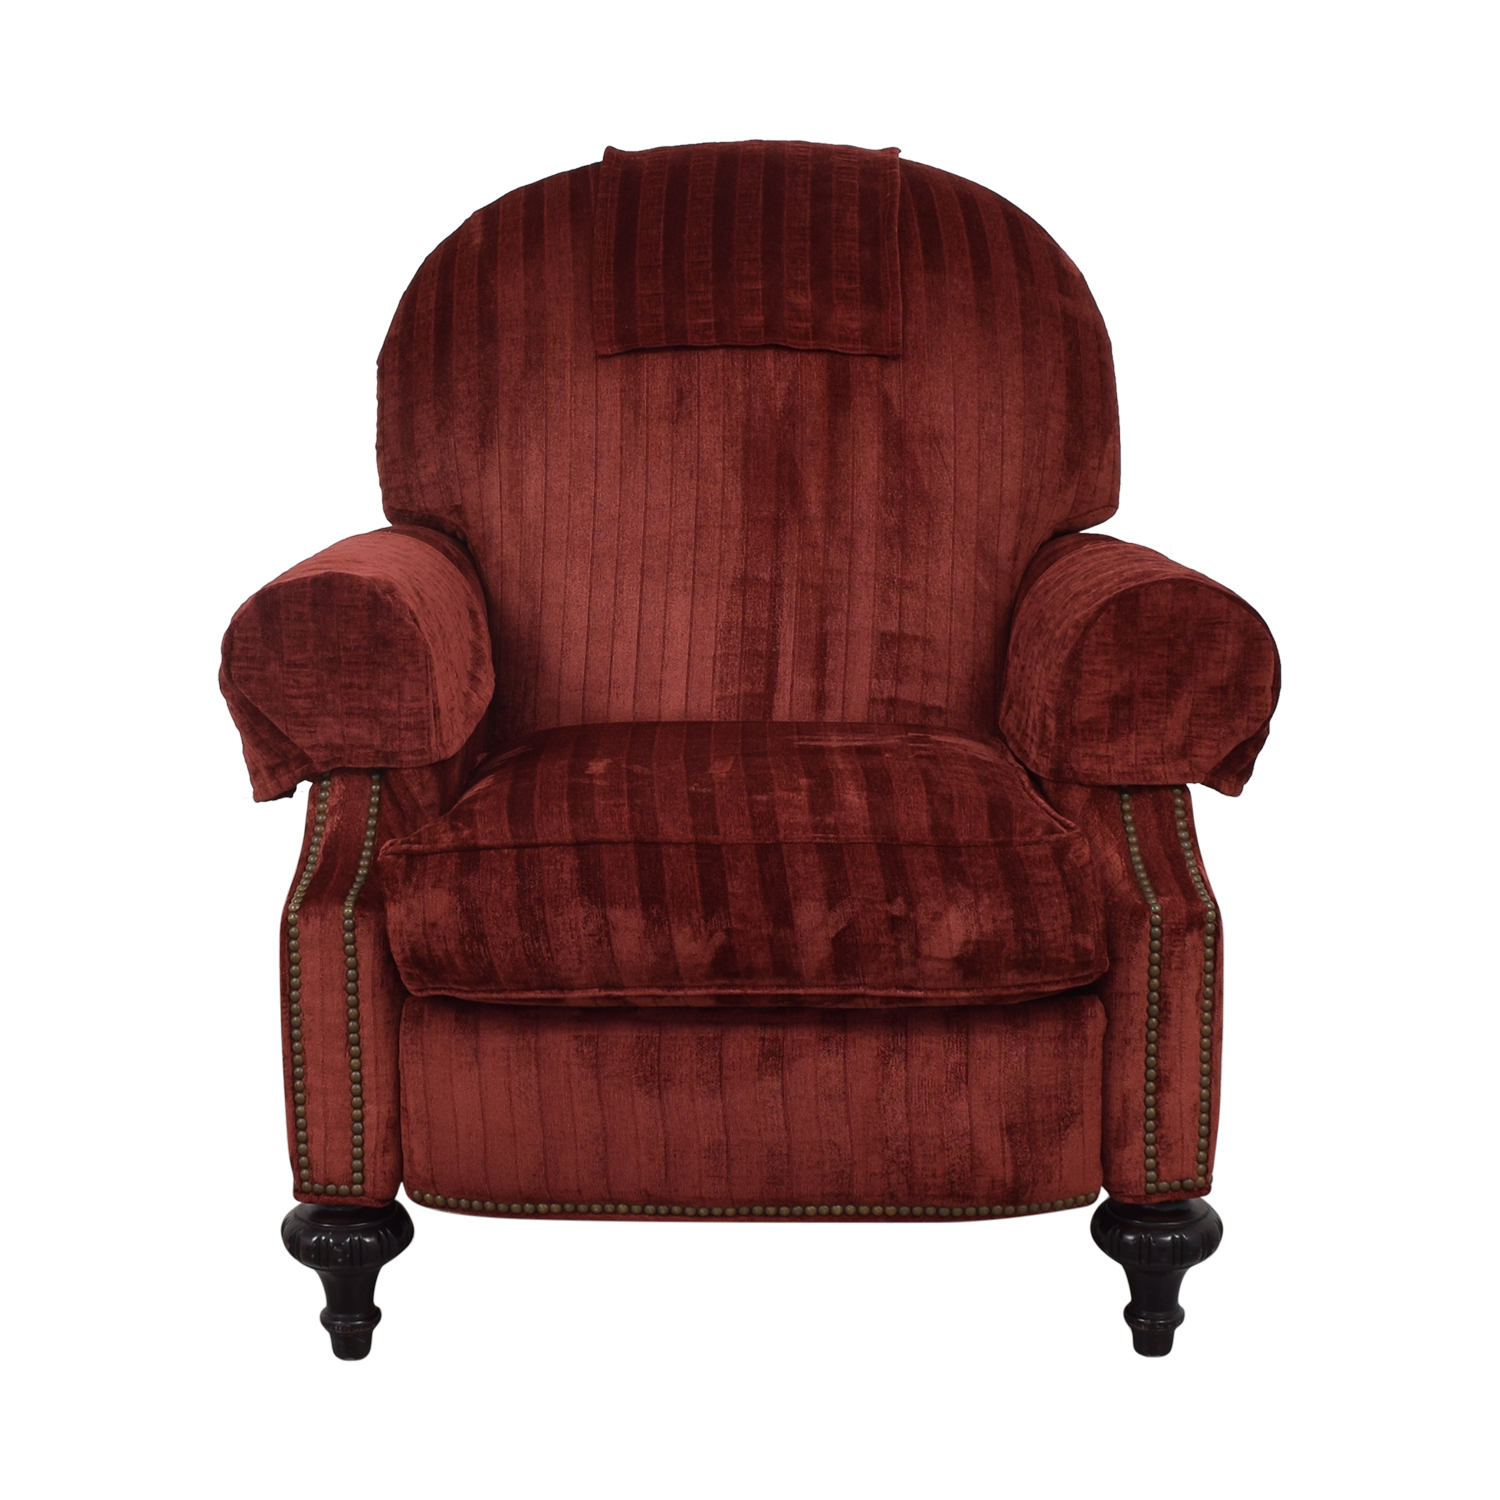 Vanguard Furniture Club Recliner Chair / Chairs